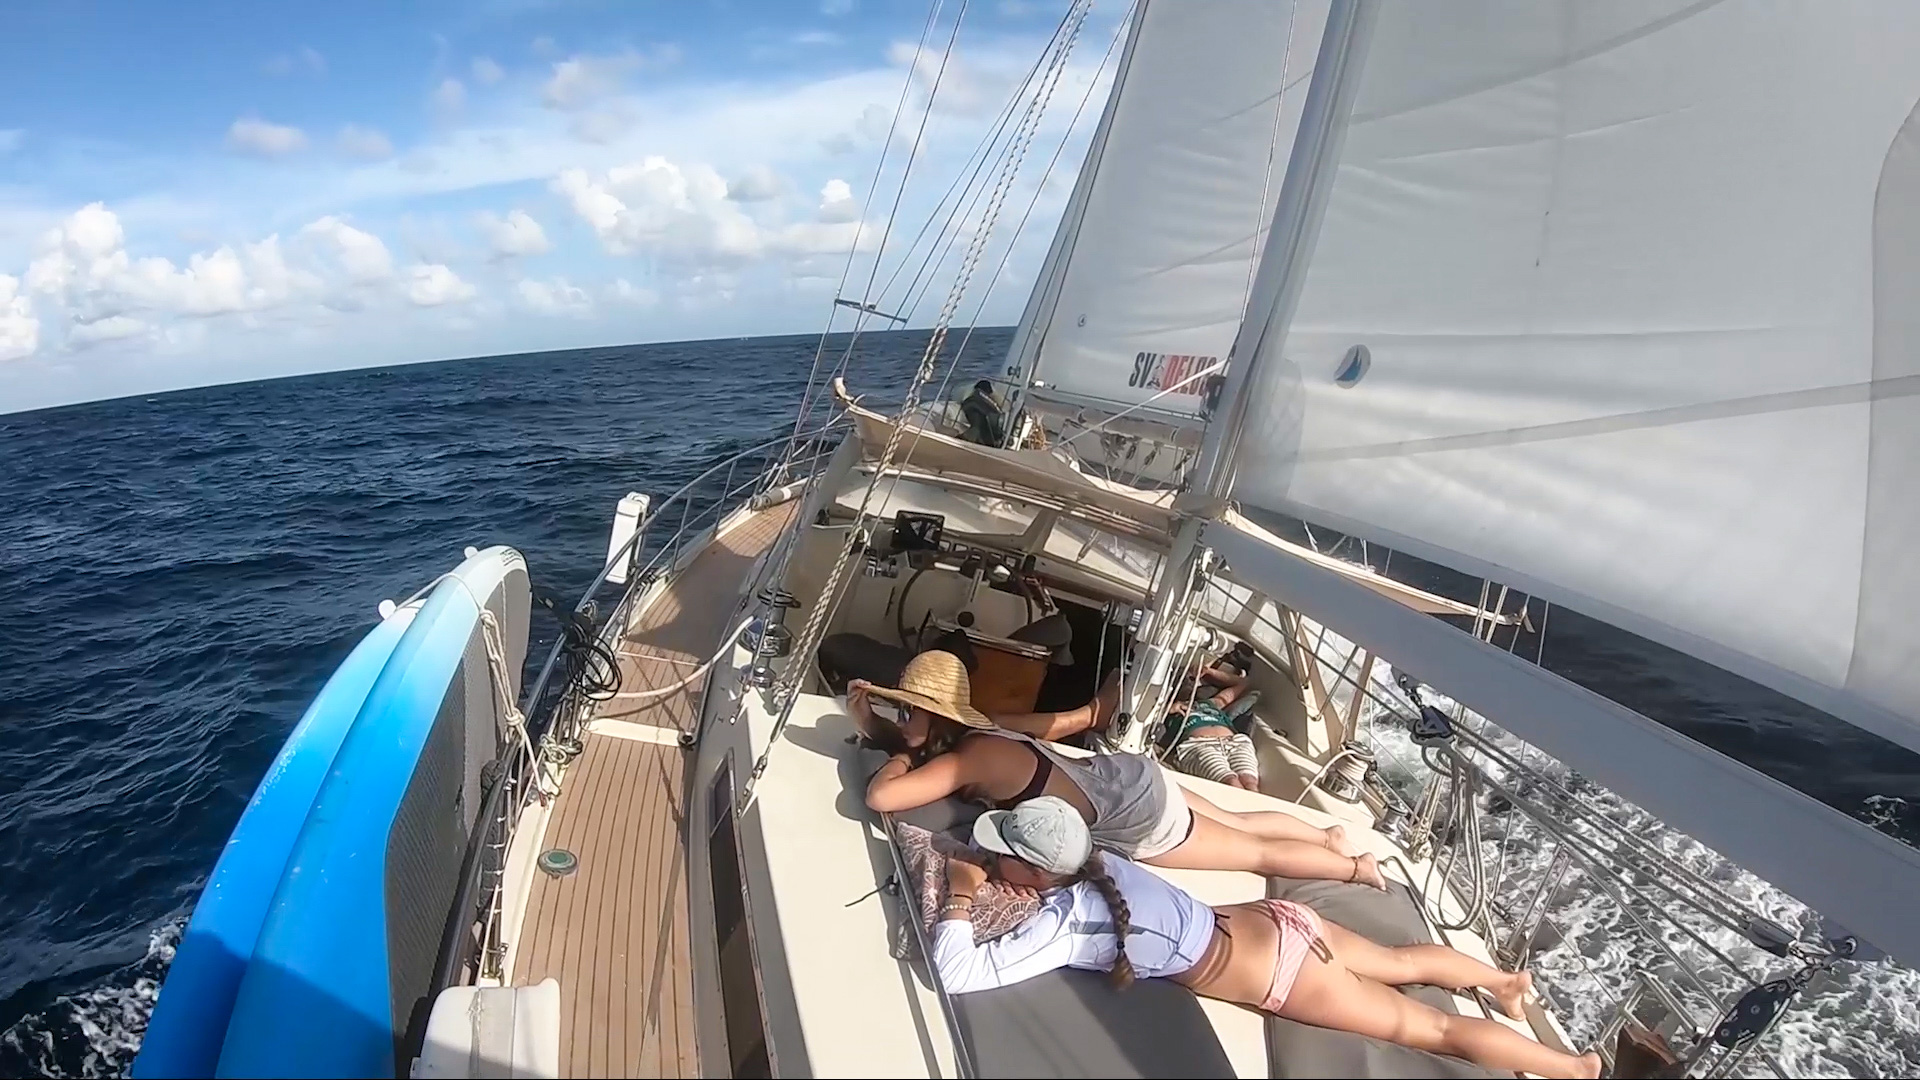 The crew is going INSANE by their passage at SEA